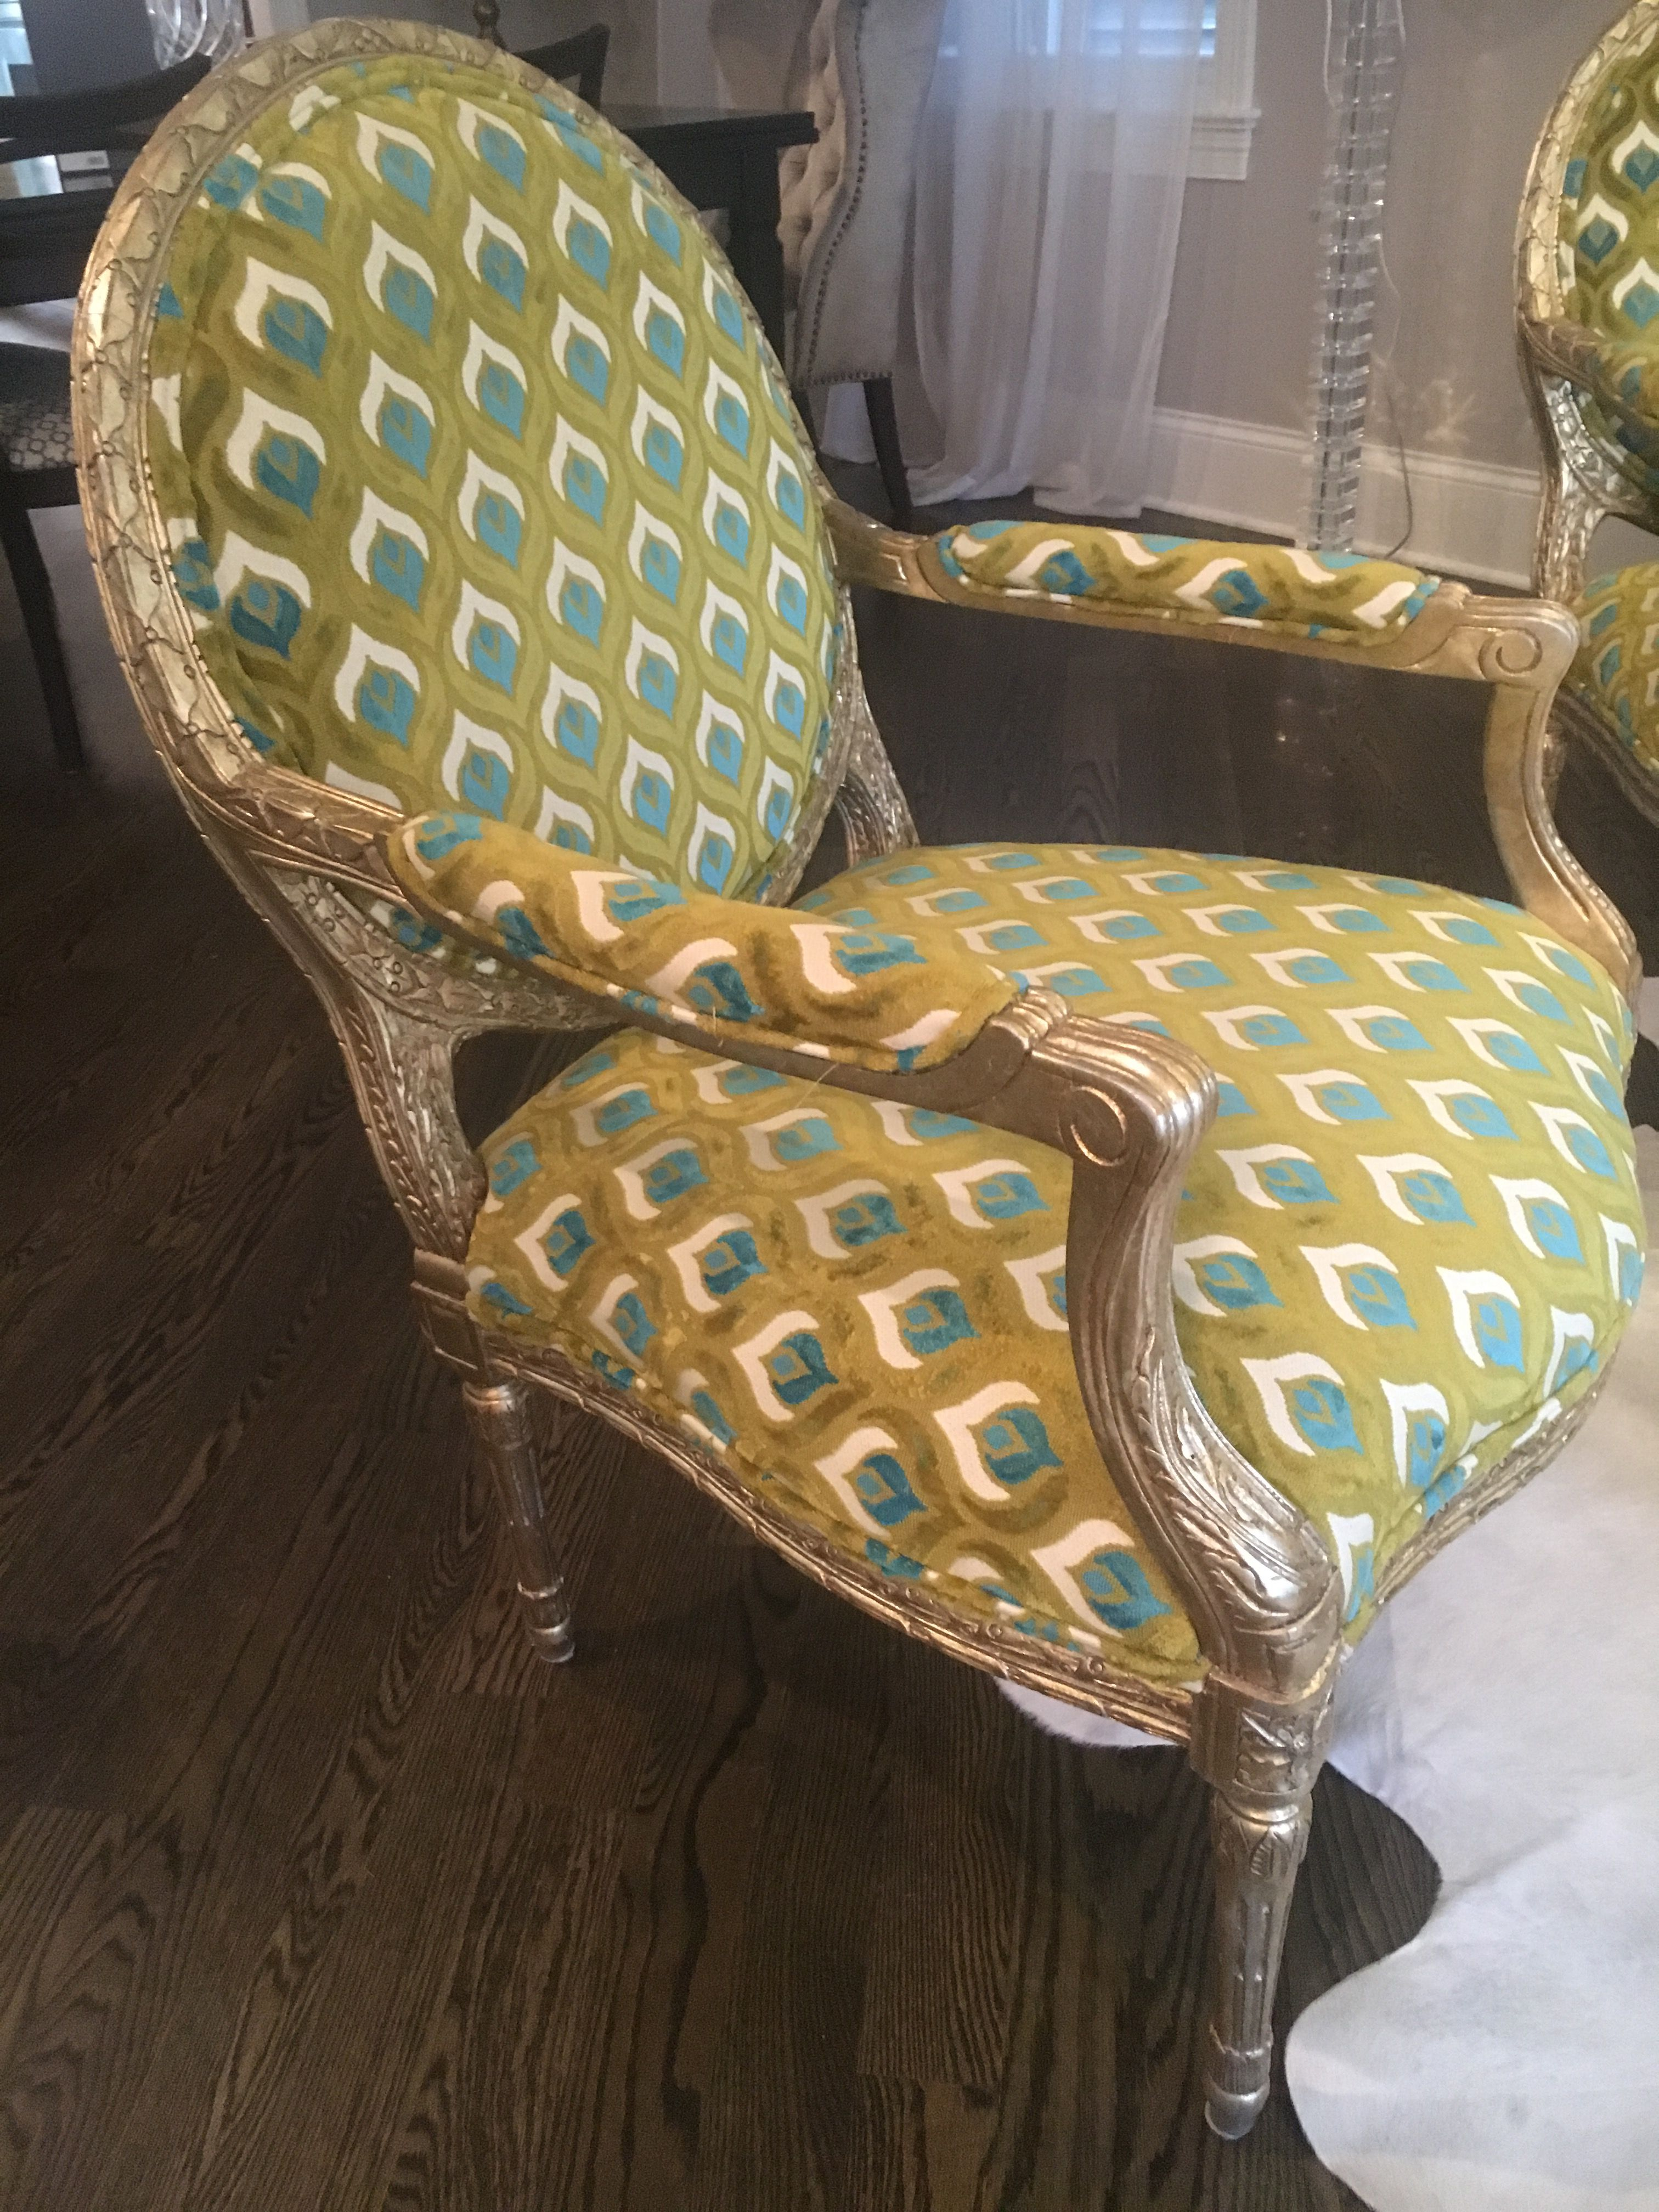 Custom Queen Anne chair with teal green cut velvet upholstery